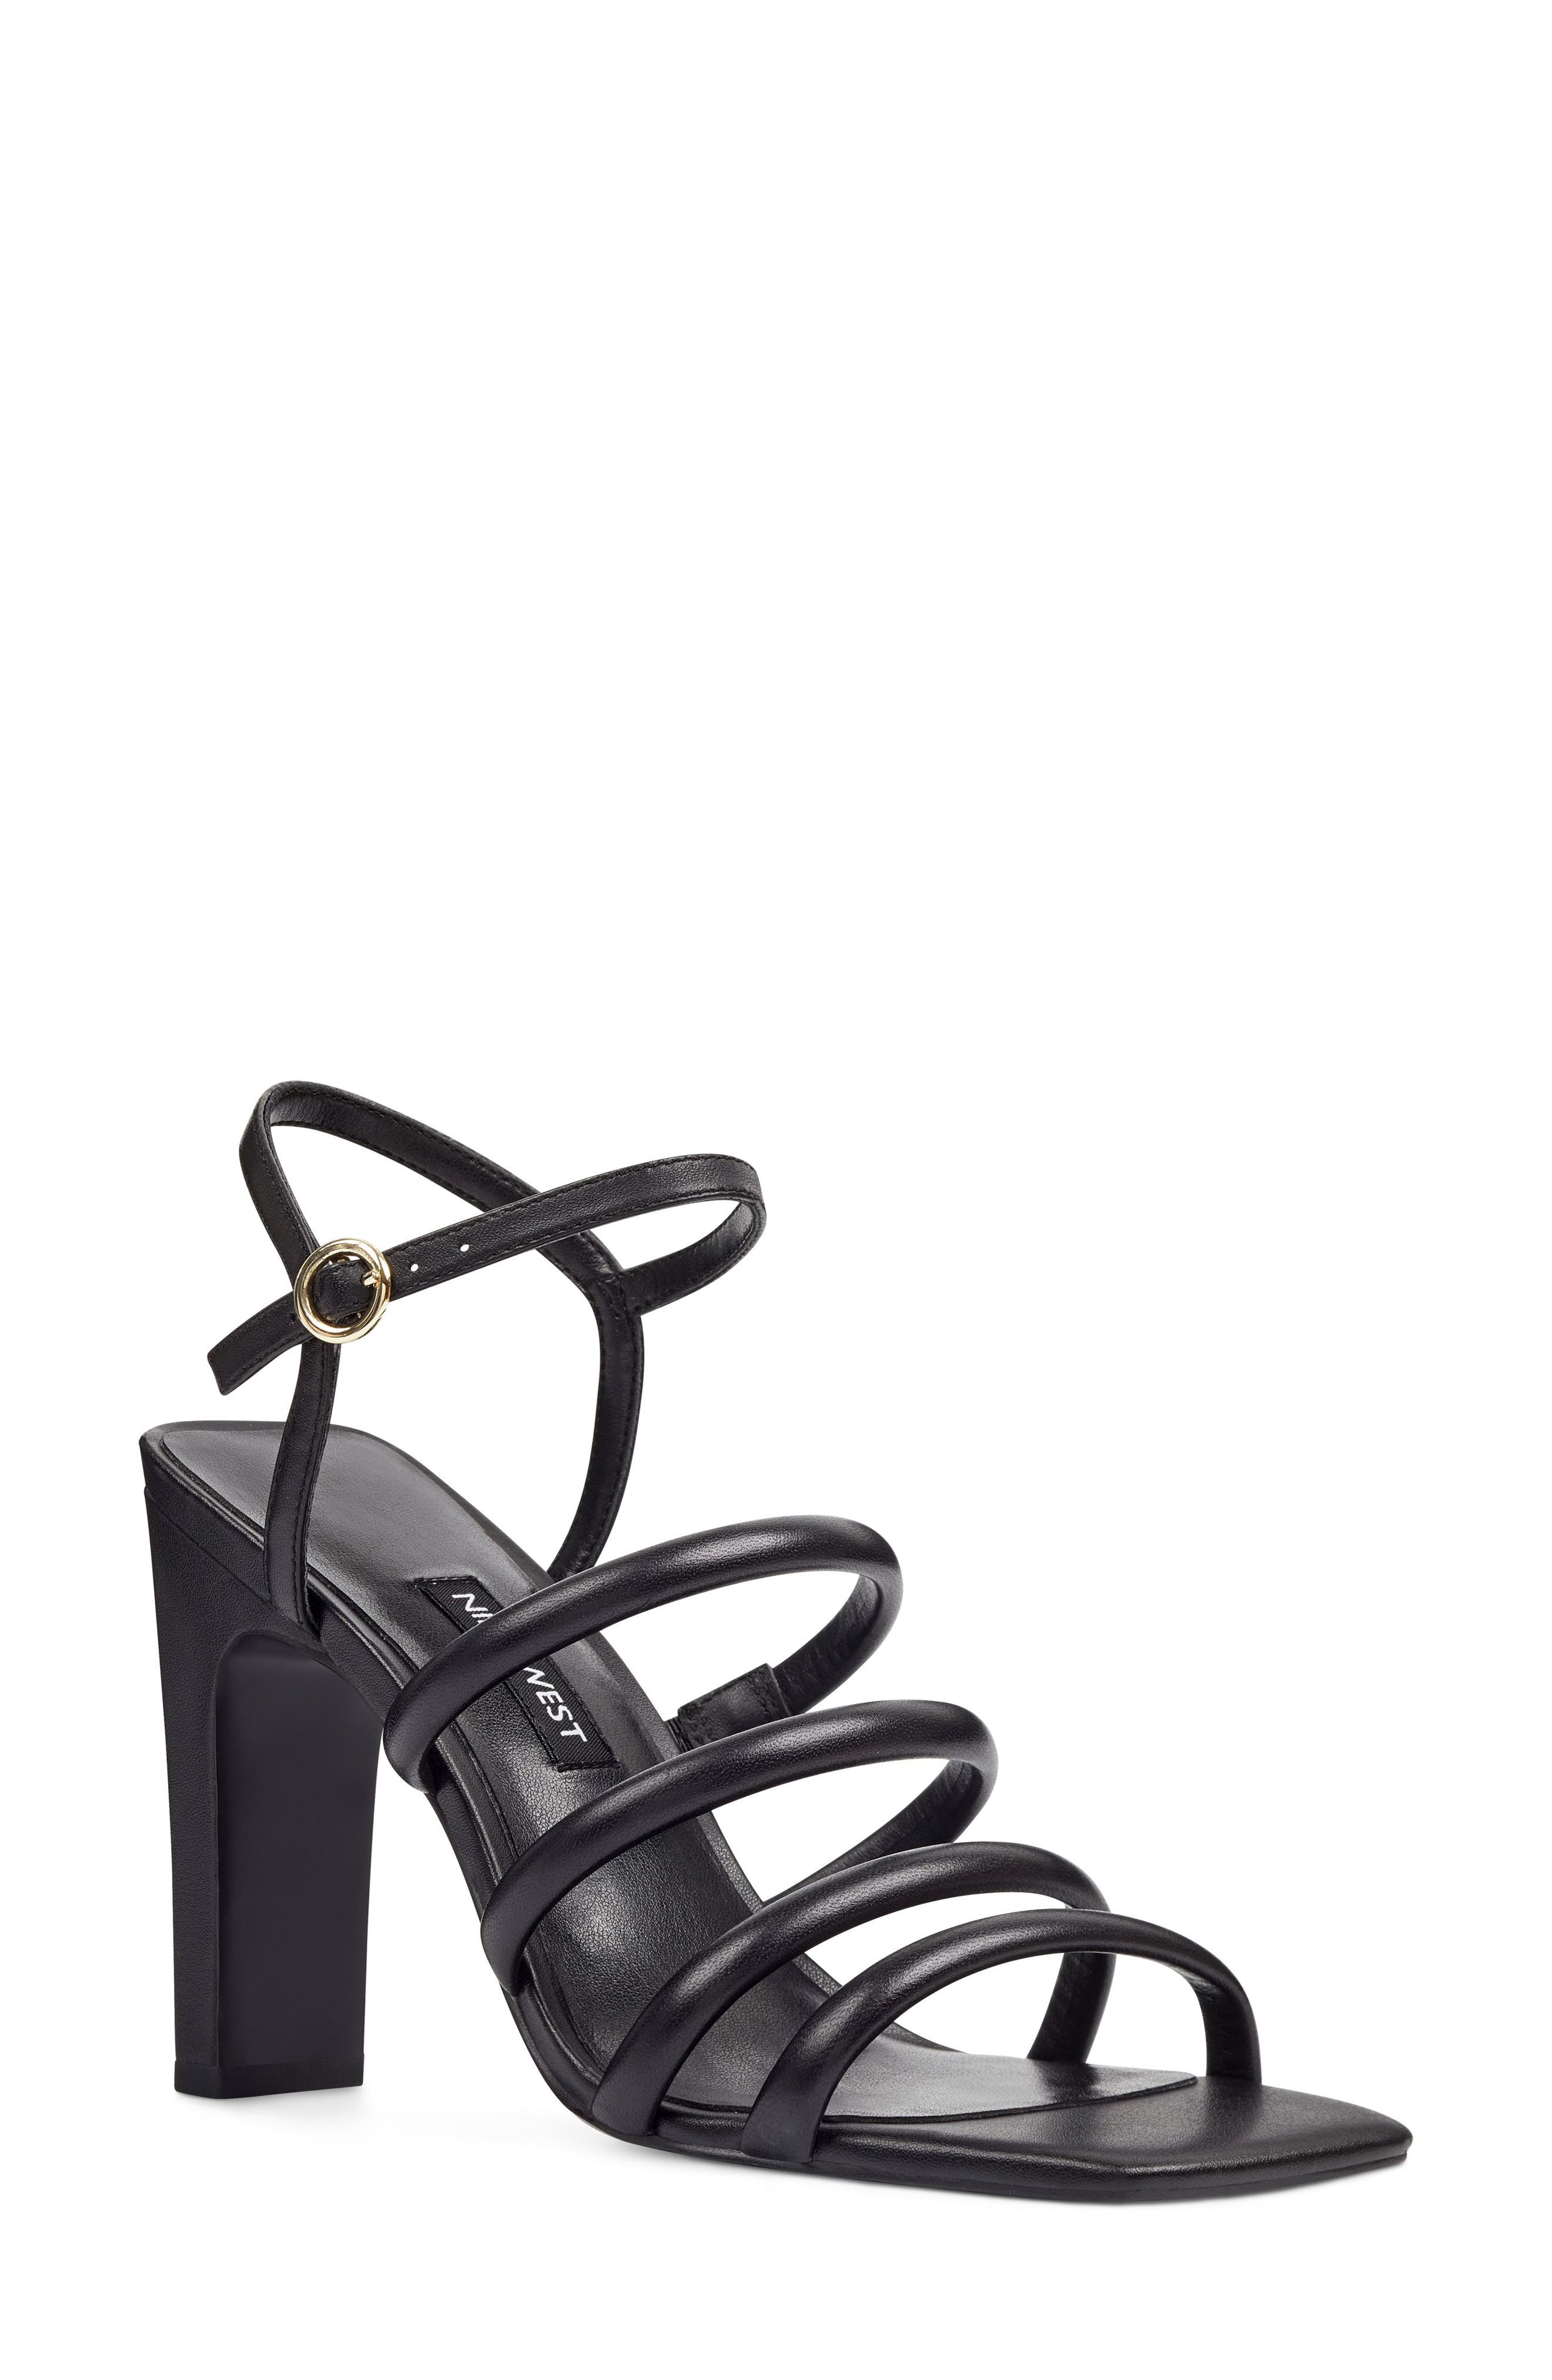 Laxian Cage Sandal,                             Main thumbnail 1, color,                             Black Leather